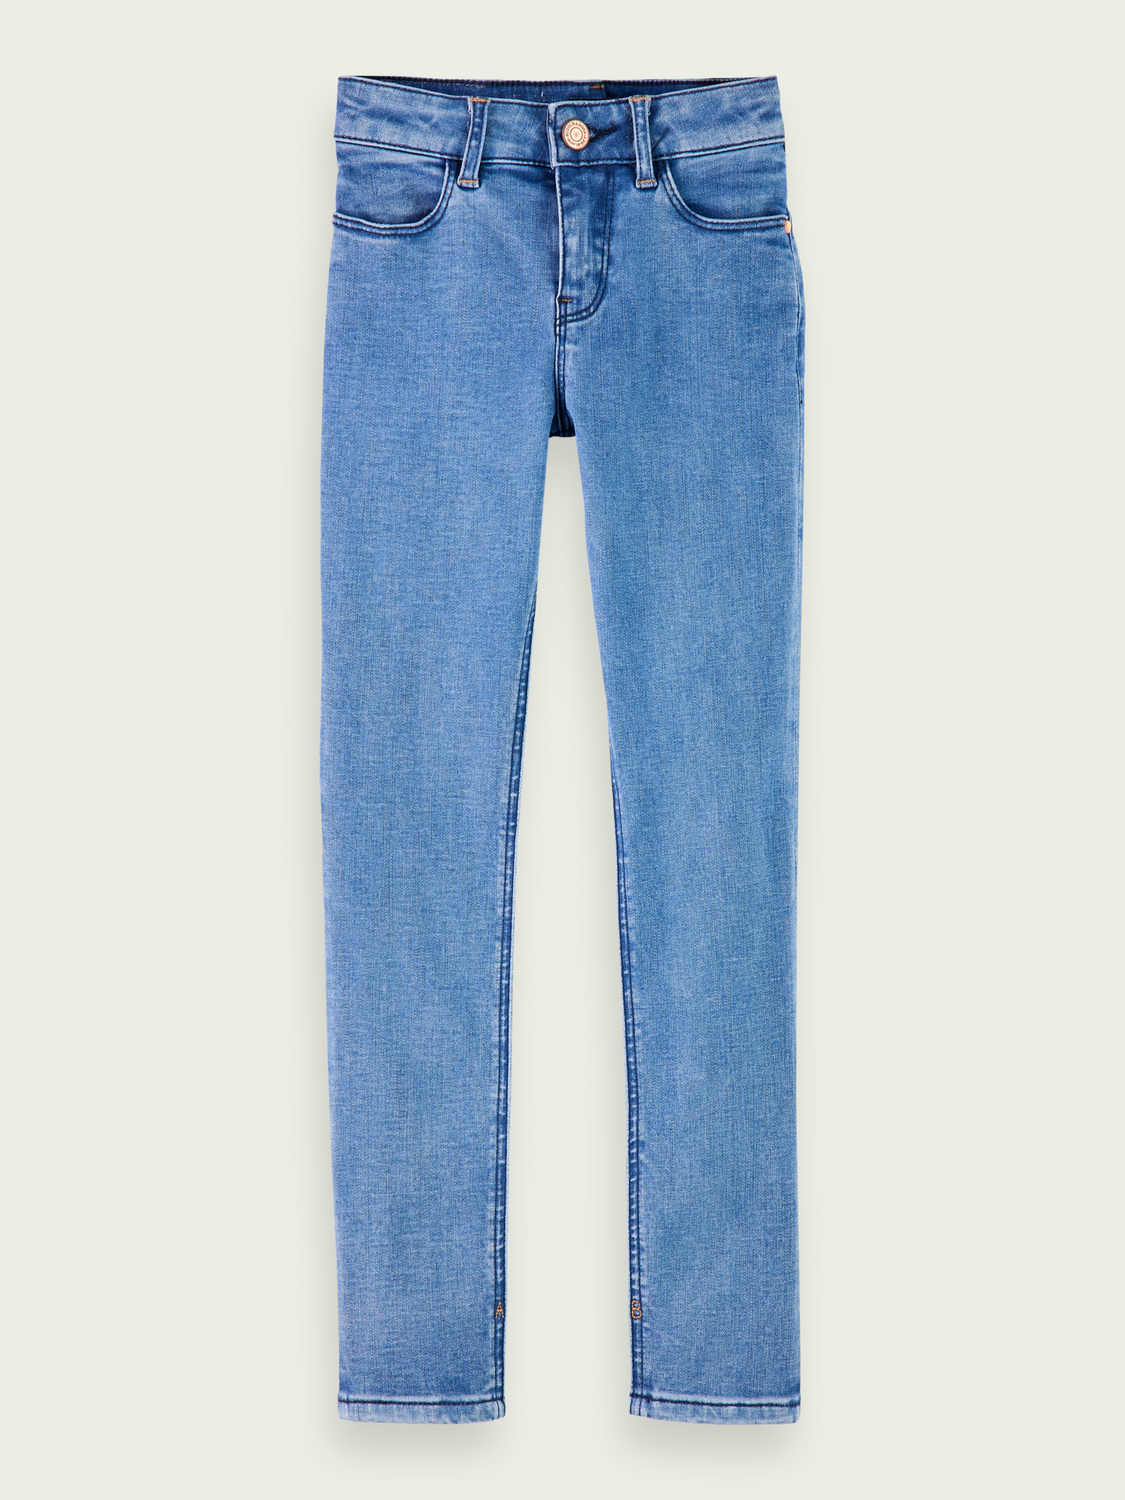 Kids La Charmante - Moody Blue | High-rise skinny fit jeans